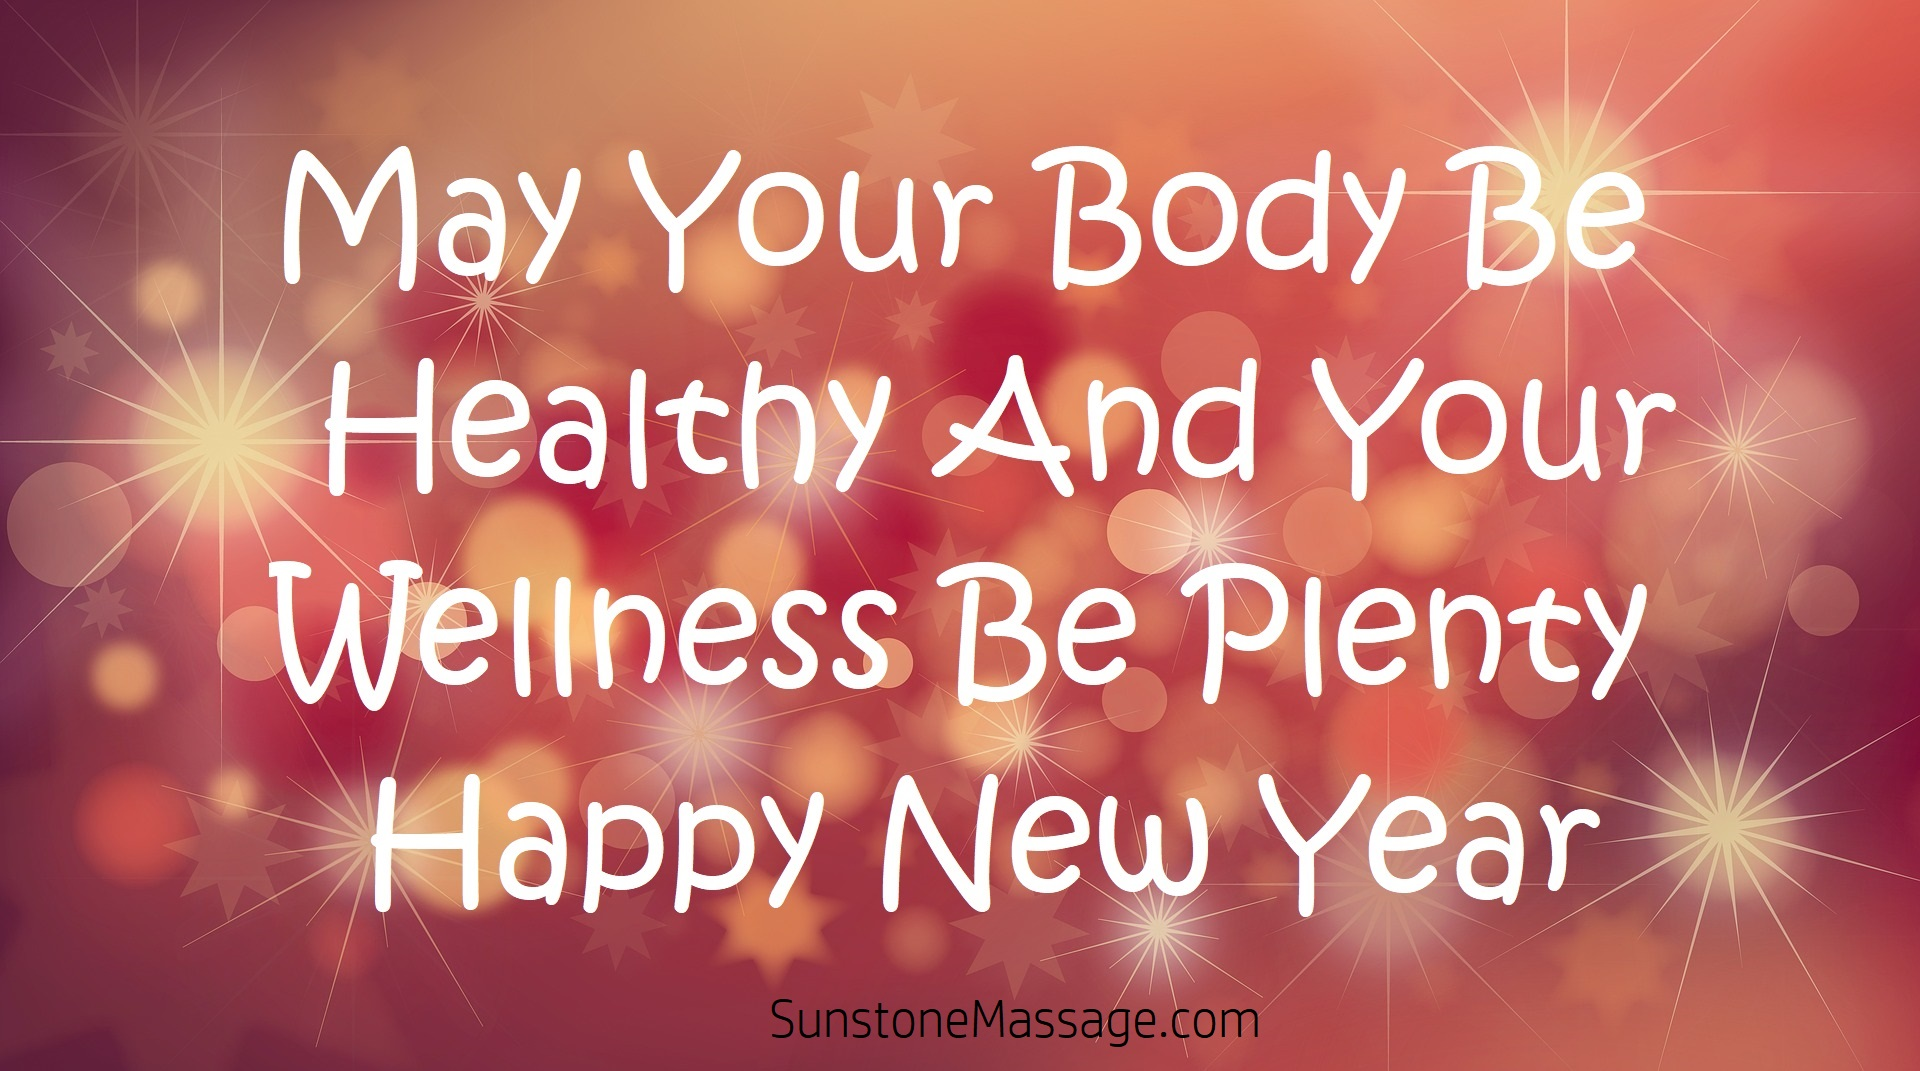 May Your Body Be Healthy And Your Wellness Be Plenty Sunstone Massage